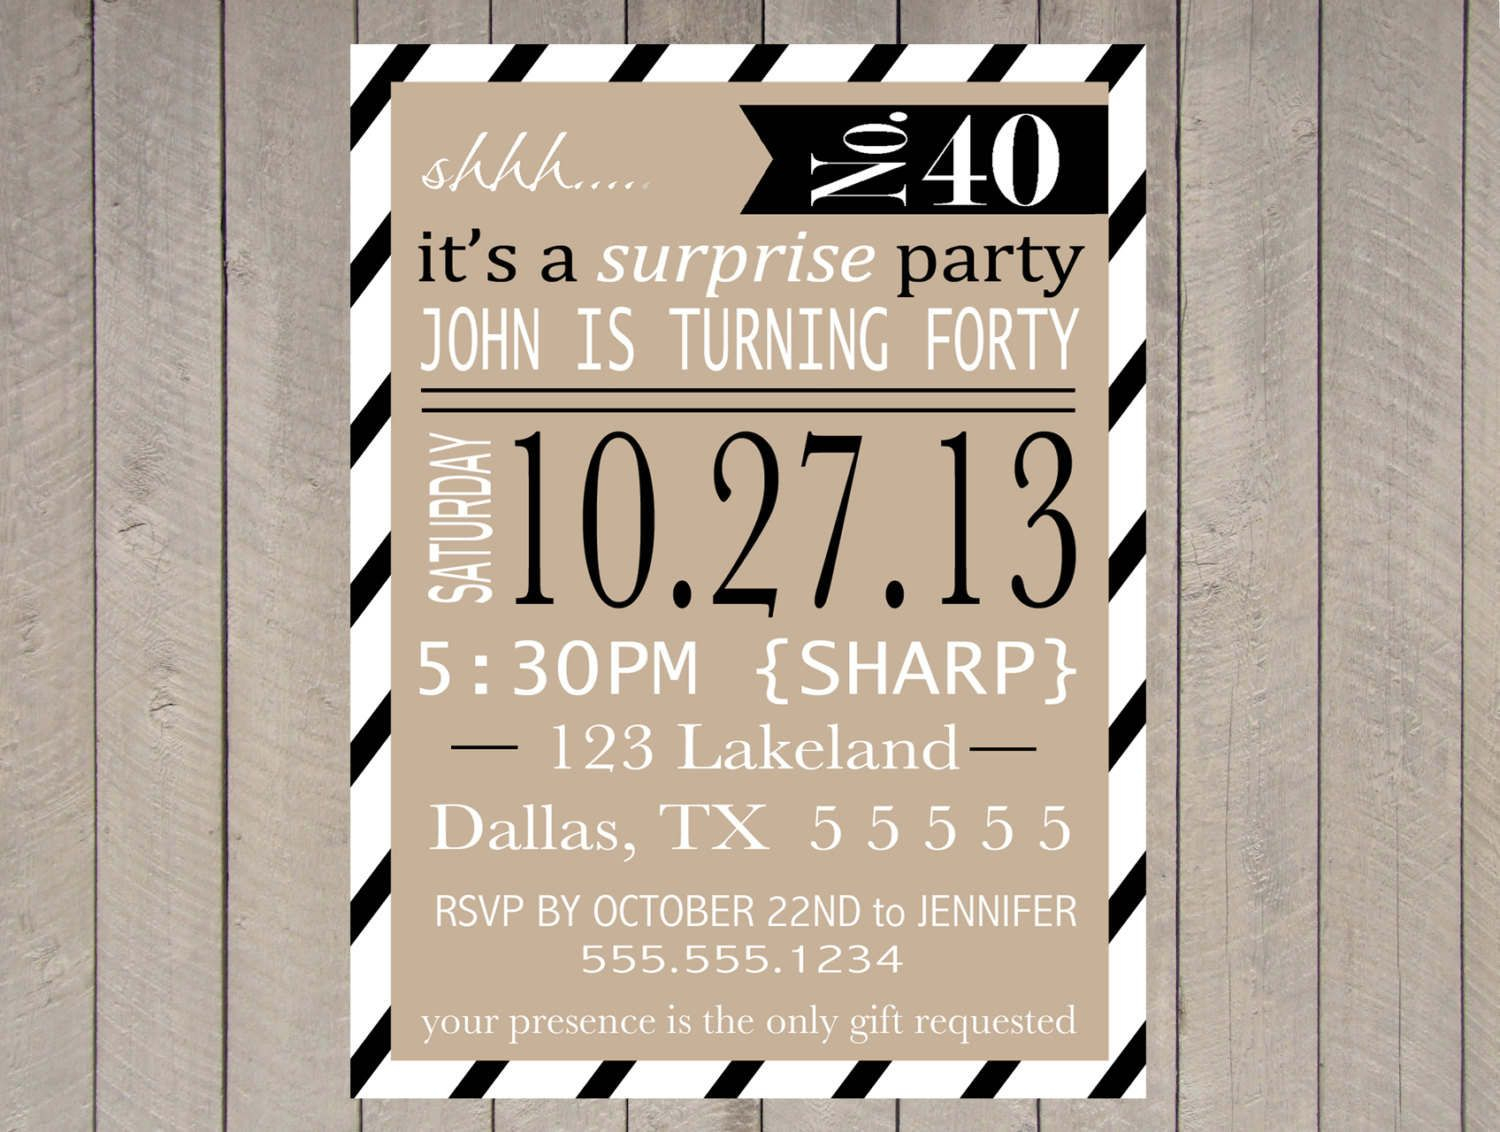 Free Printable Surprise Party Invitation Templates | Invitations - Free Printable Surprise 40Th Birthday Party Invitations